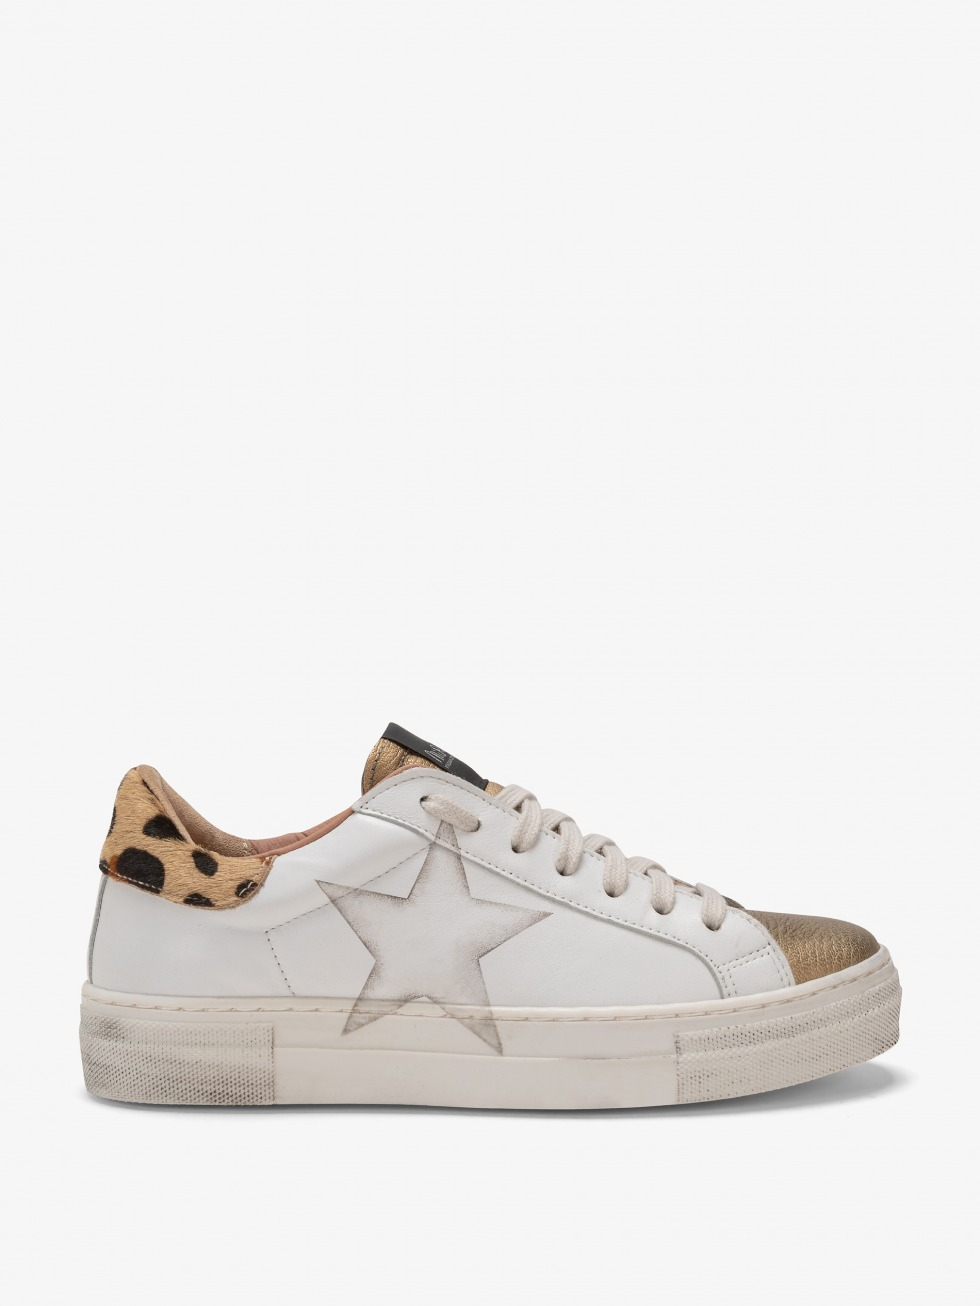 Martini Africa Gold Sneakers - Star